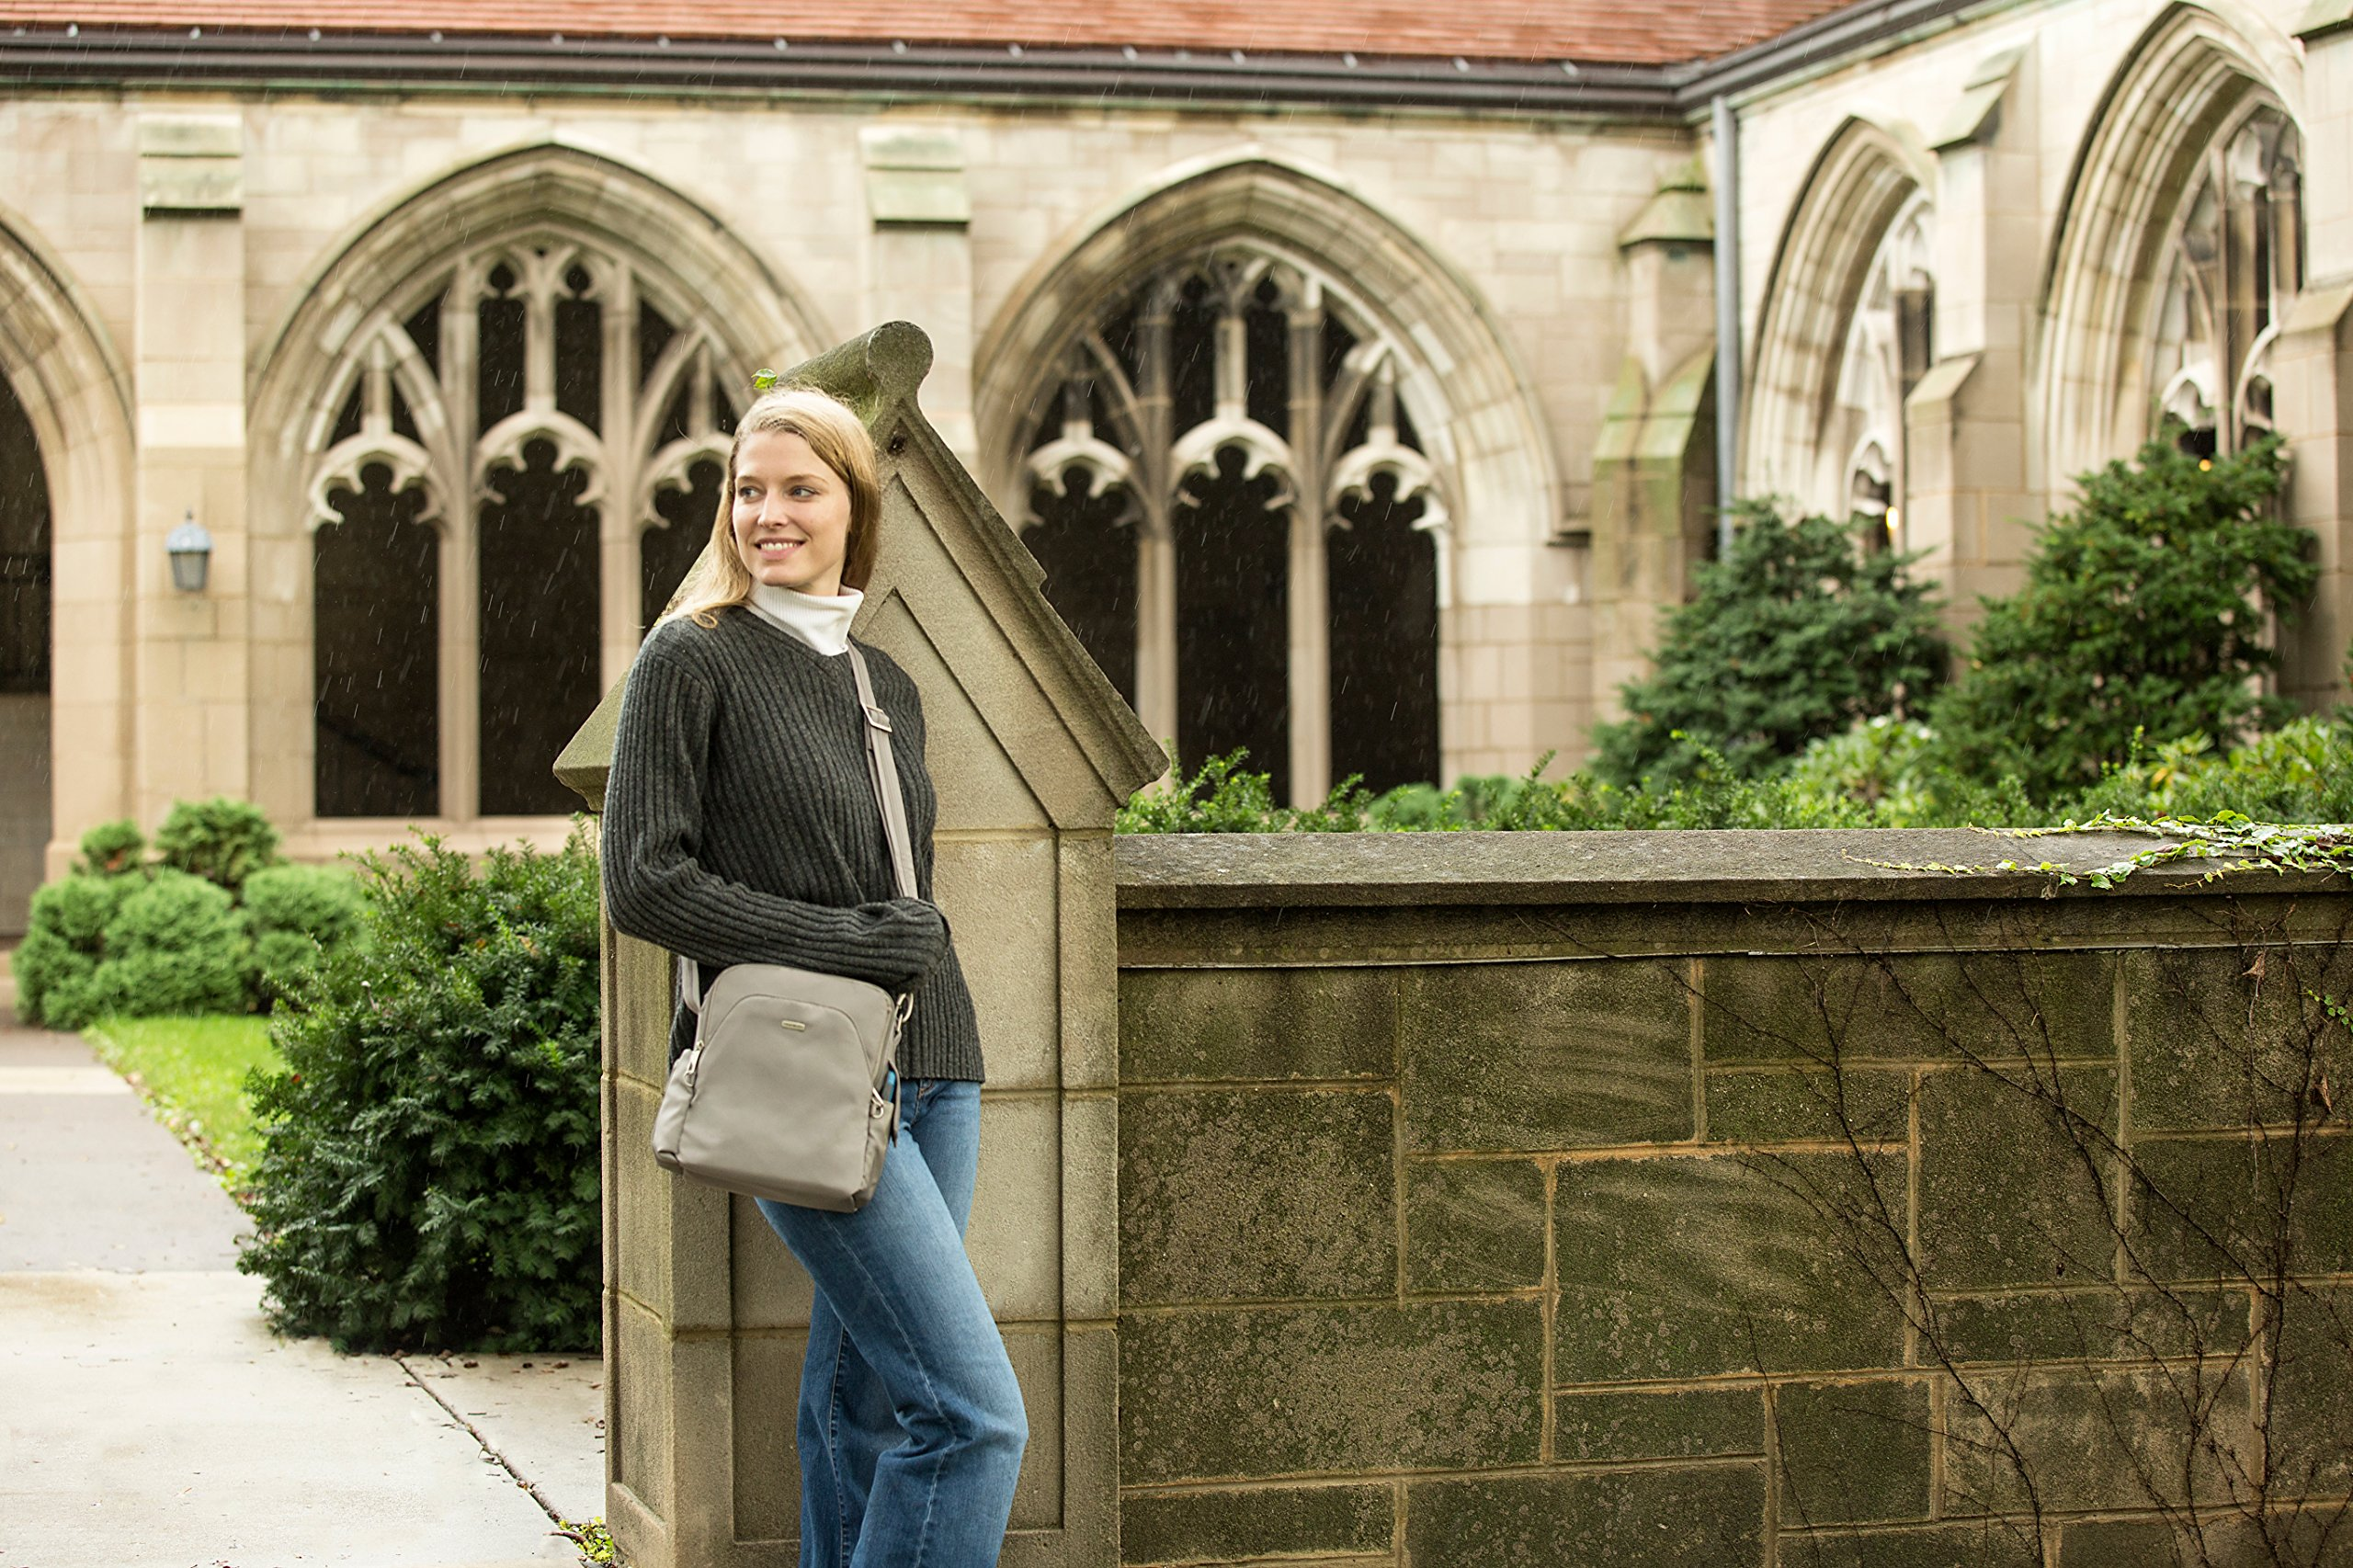 Girl with a secure travel bag .outside a church. An rfid bag is also essential when travelling